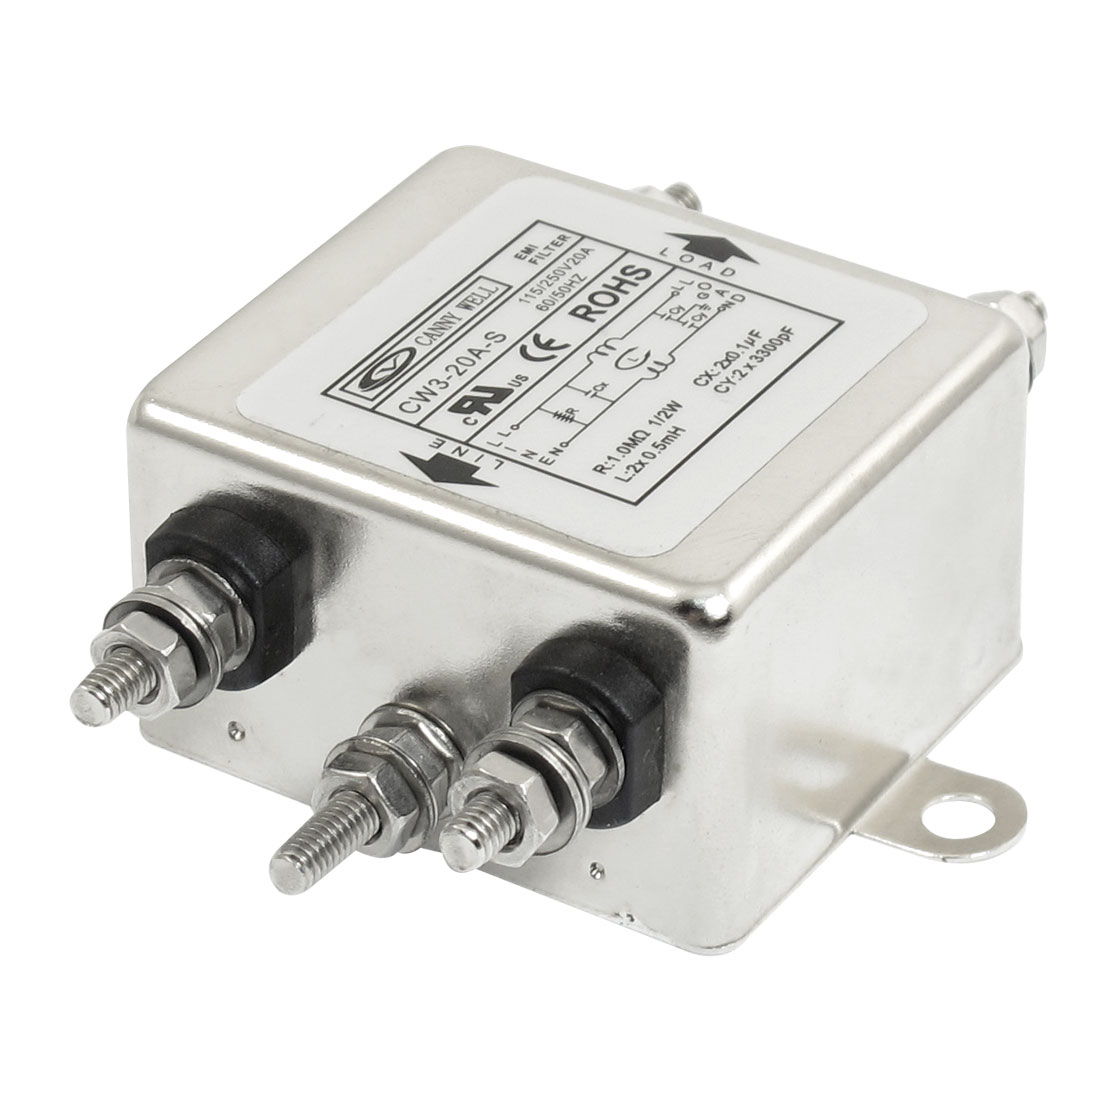 CW3-20A-S AC Power Single Phase Filter Noise Suppressor